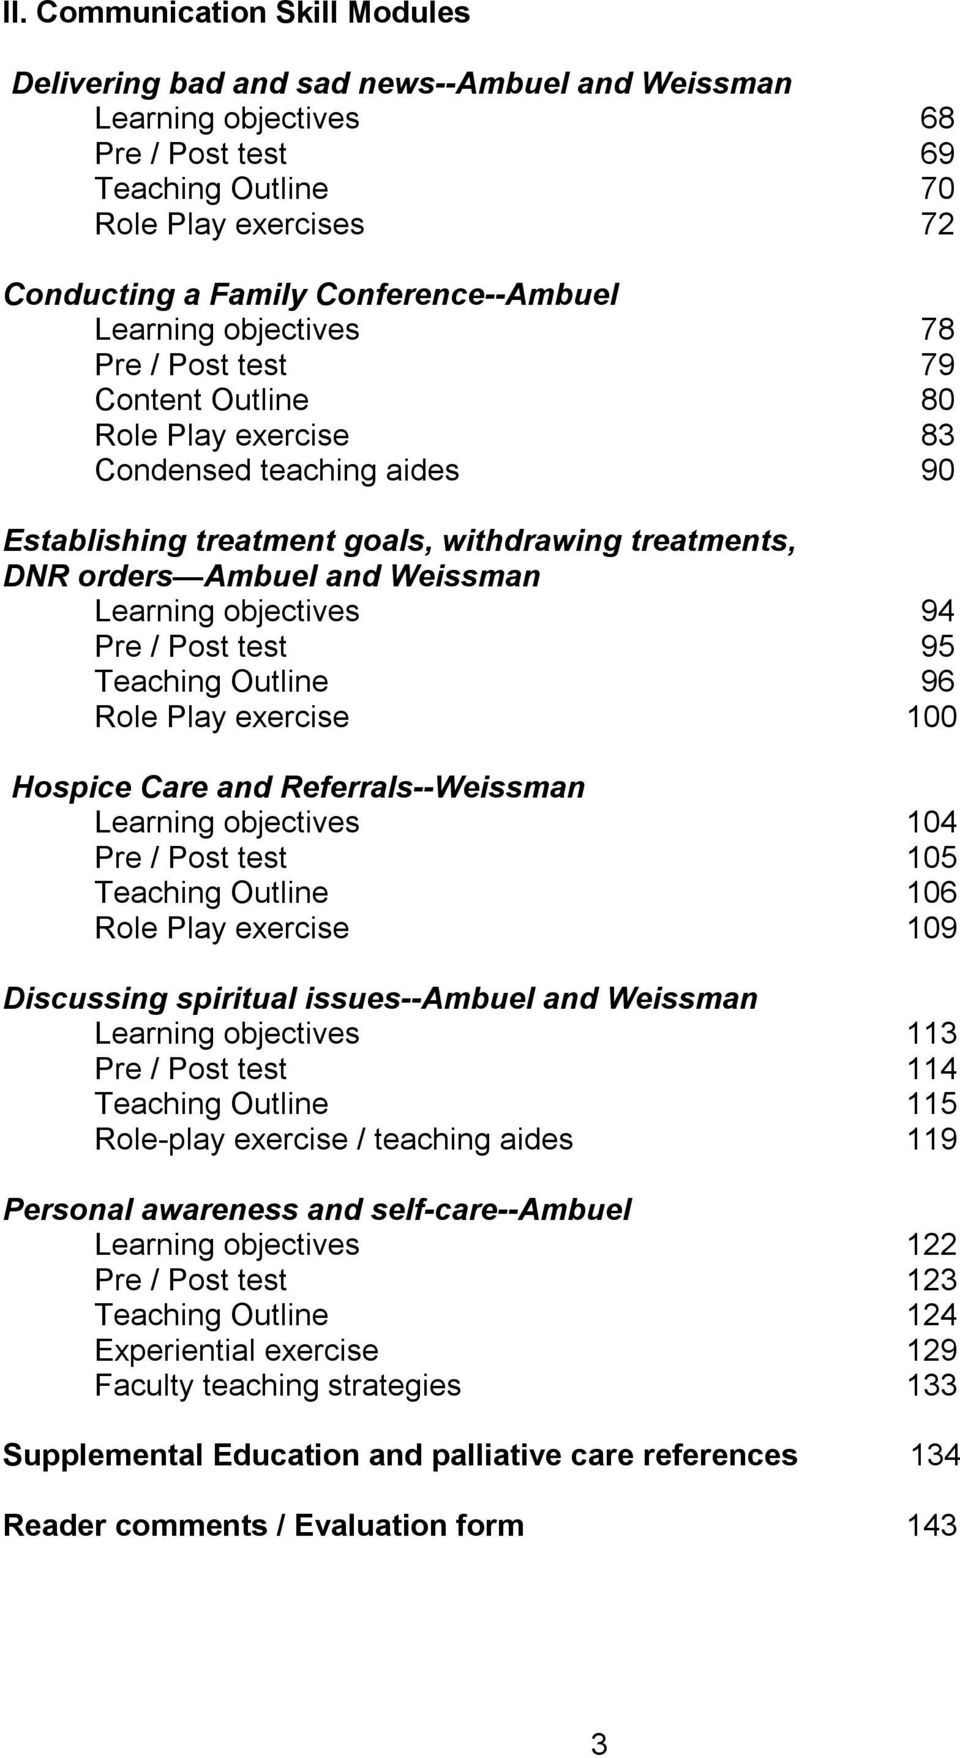 Ambuel and Weissman Learning objectives 94 Pre / Post test 95 Teaching Outline 96 Role Play exercise 100 Hospice Care and Referrals--Weissman Learning objectives 104 Pre / Post test 105 Teaching